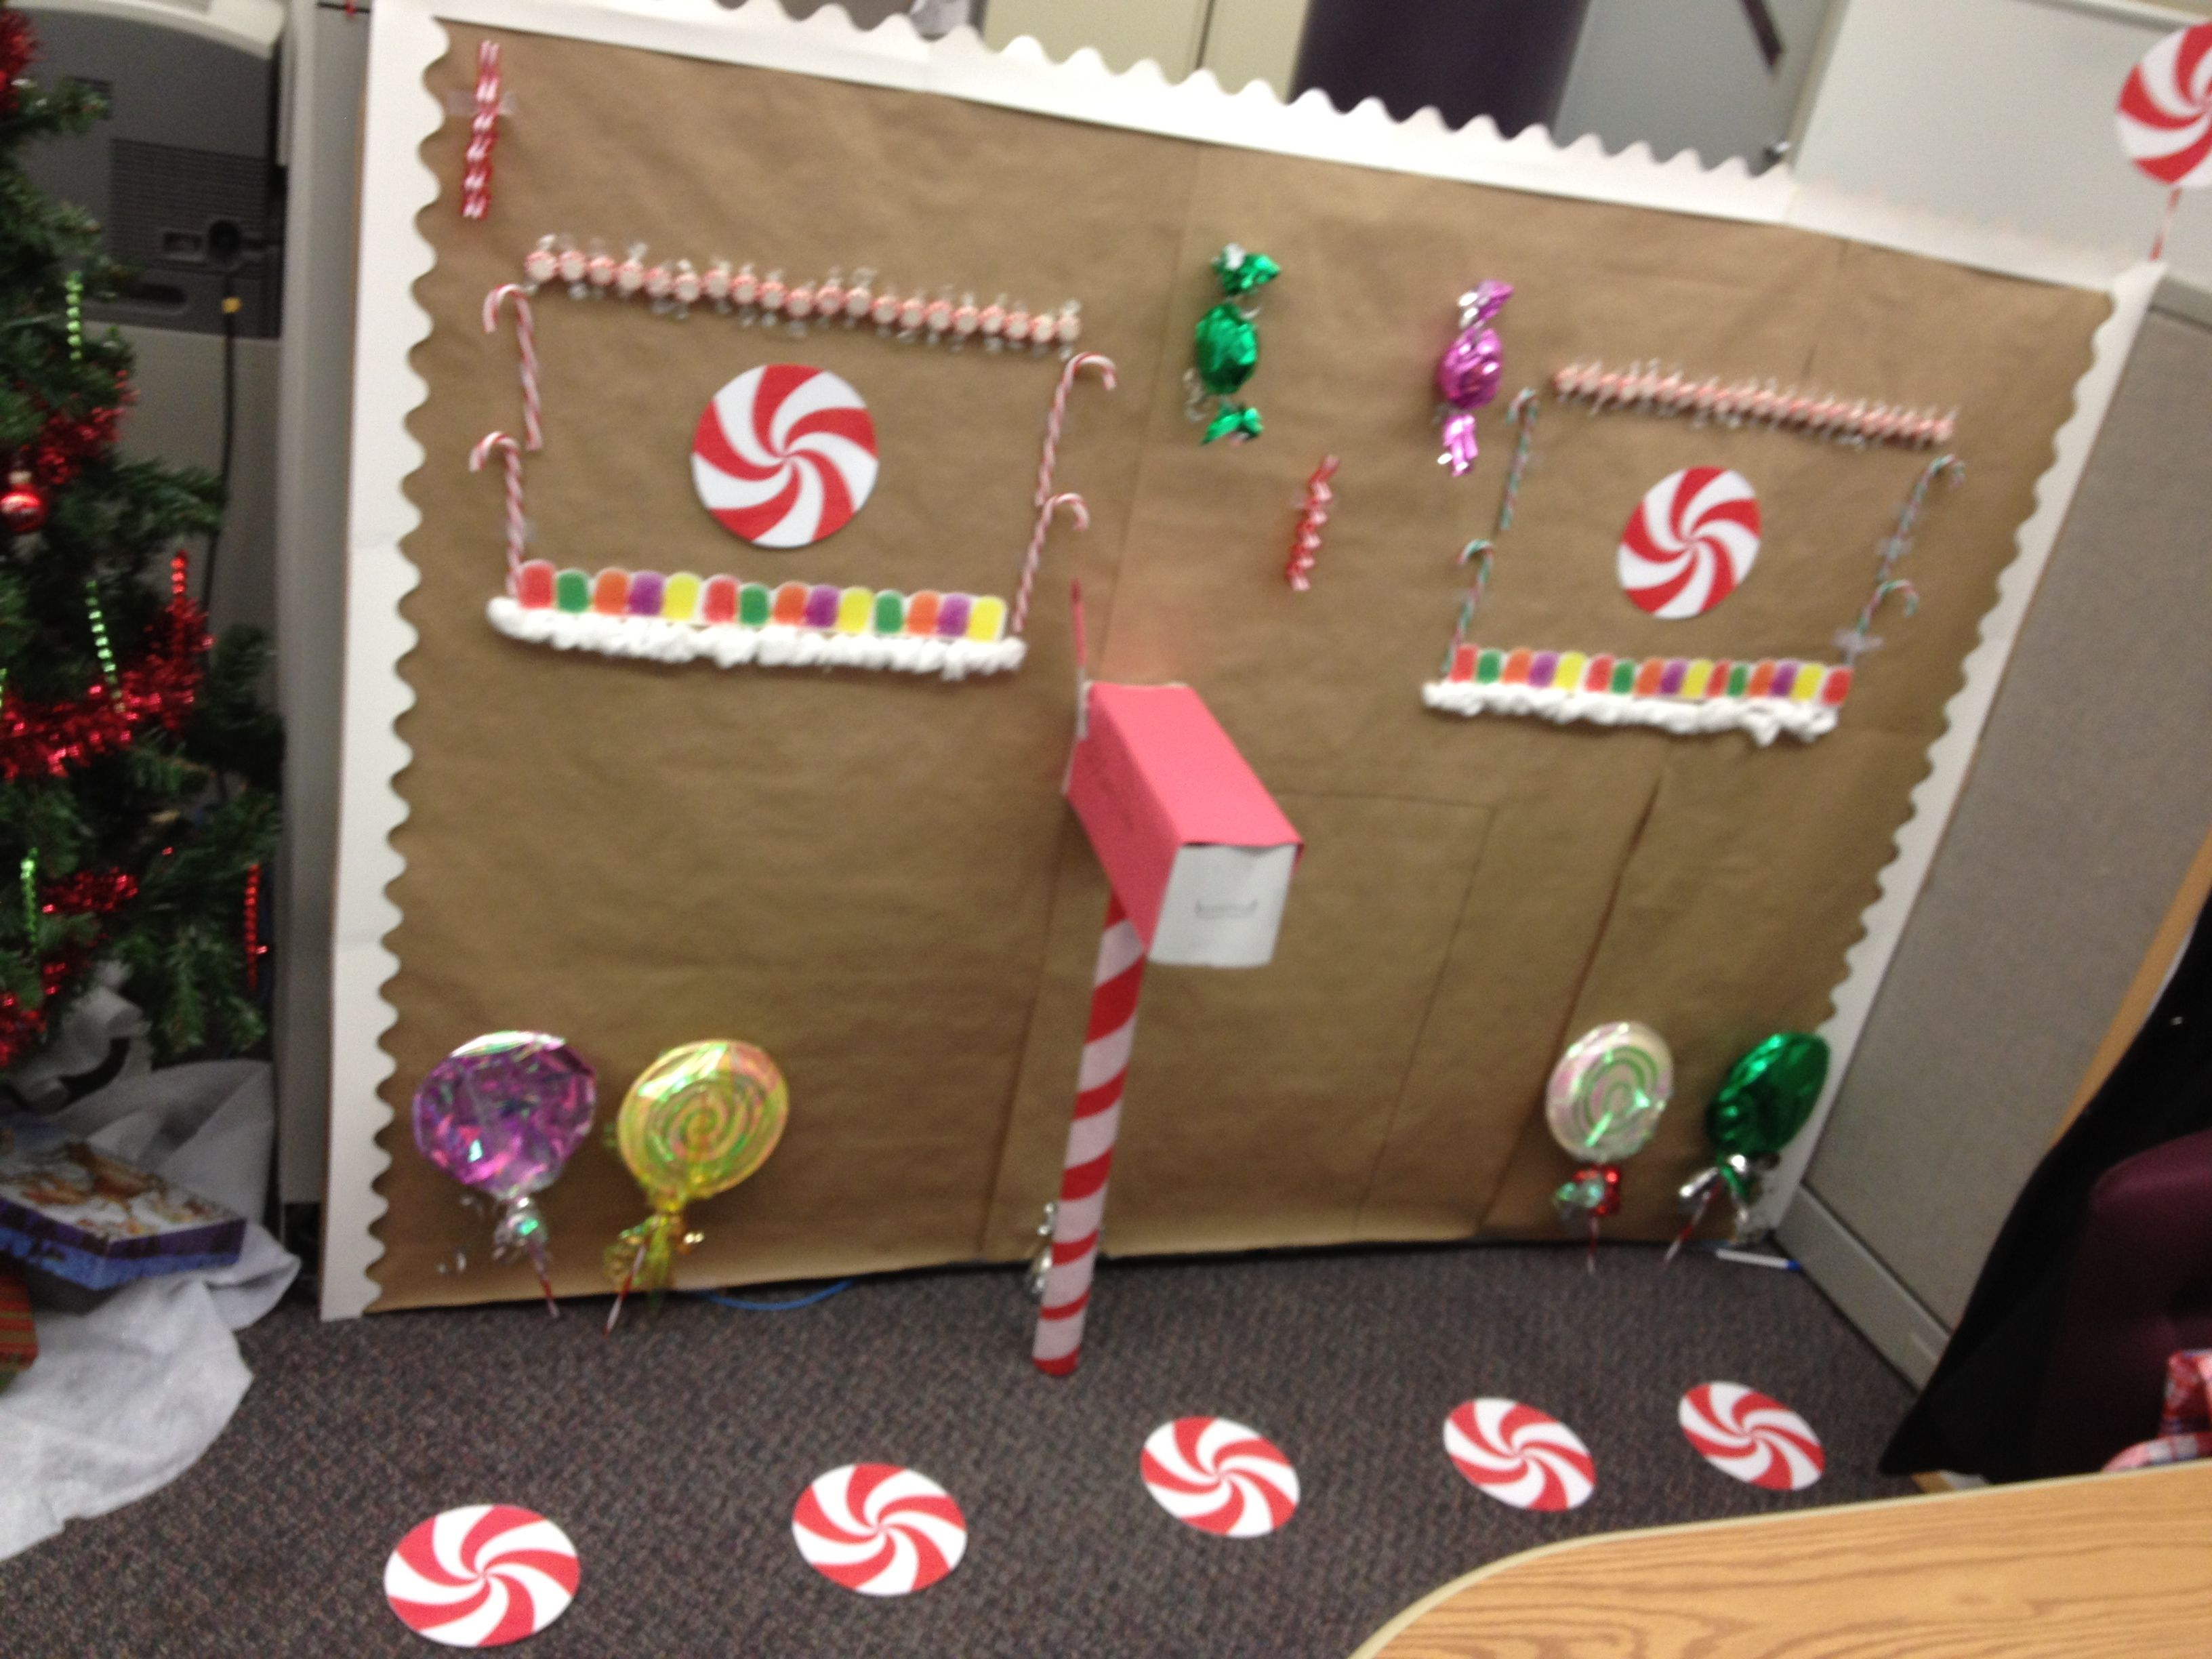 Decorate your cubicle for christmas with dollar store items this design was 5 00 total